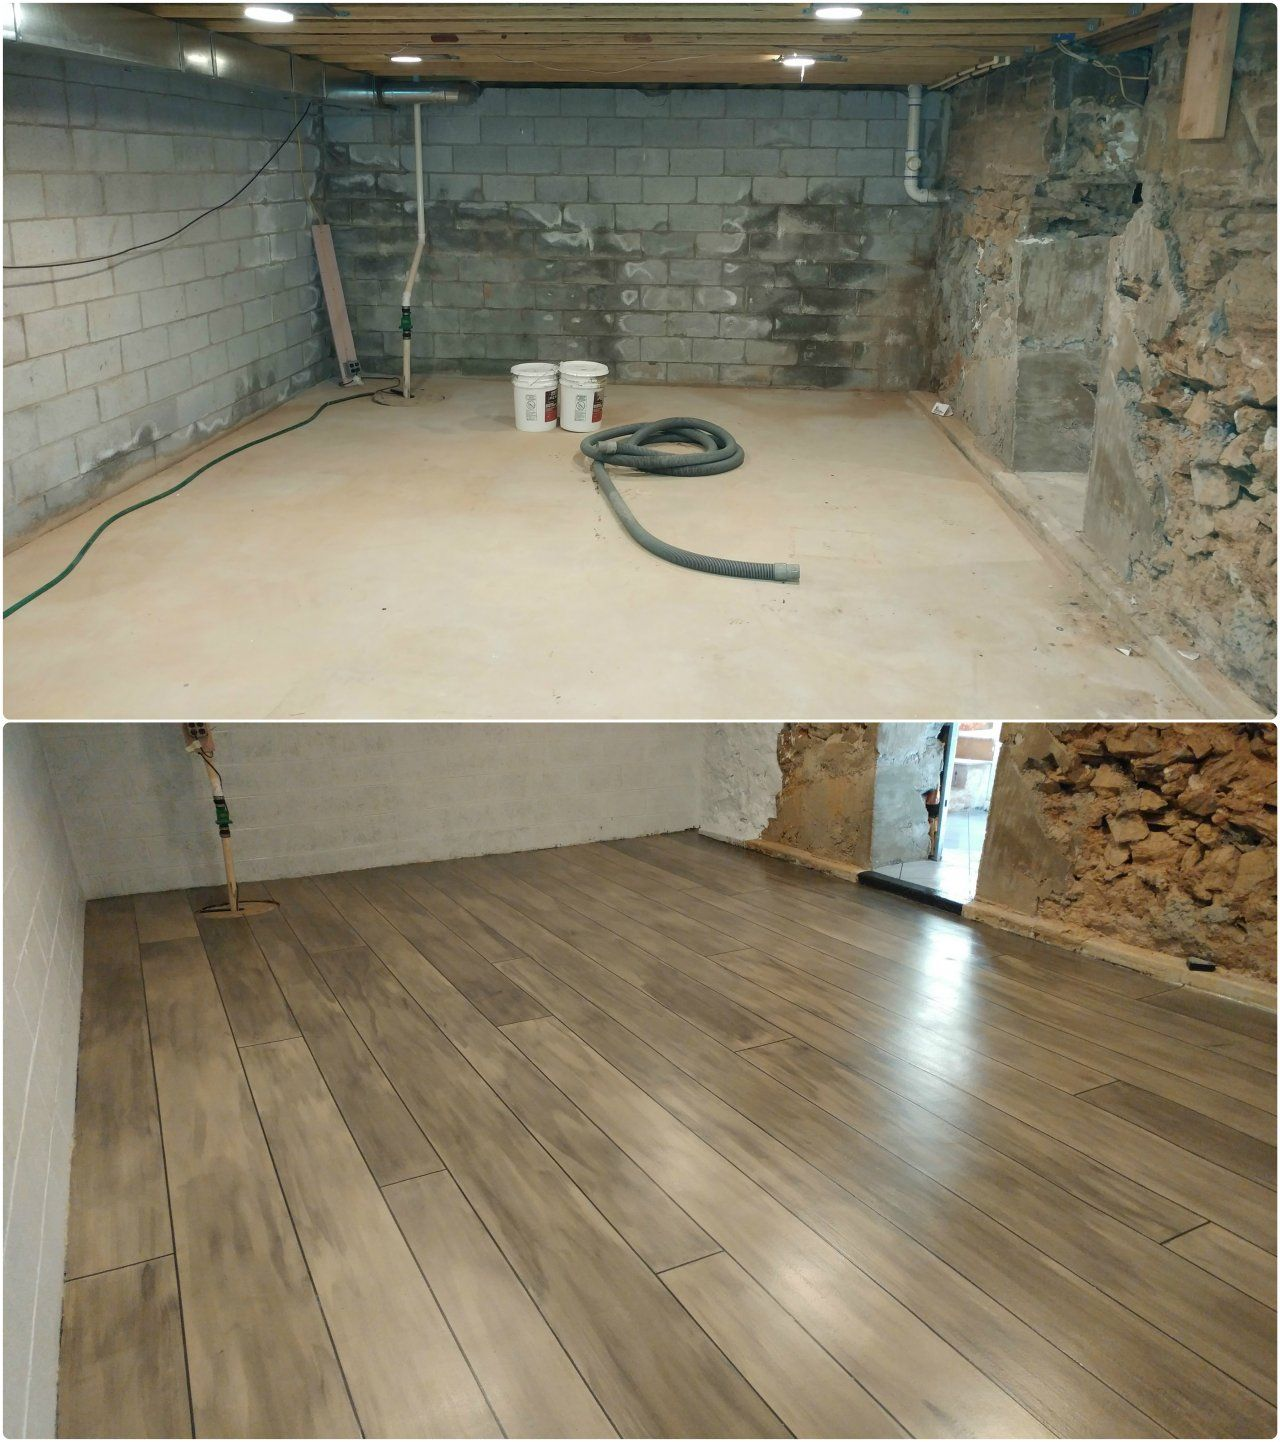 Basement refinished with Concrete Wood- Ardmore PA & Basement refinished with Concrete Wood- Ardmore PA | Rustic Concrete ...